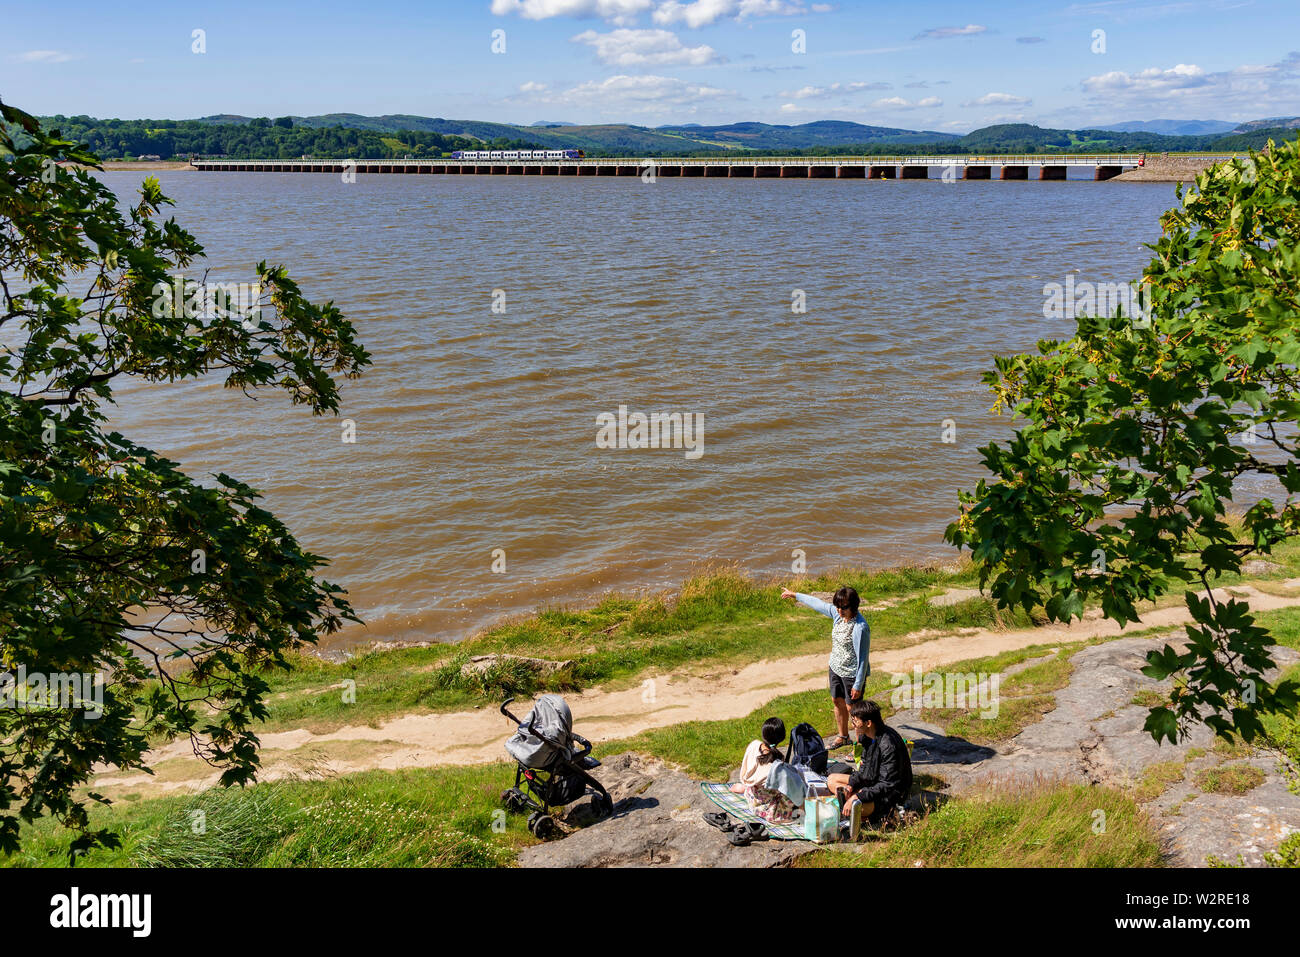 The railway viaduct over the river Kent at Arnside in Cumbria with picnicking family. - Stock Image